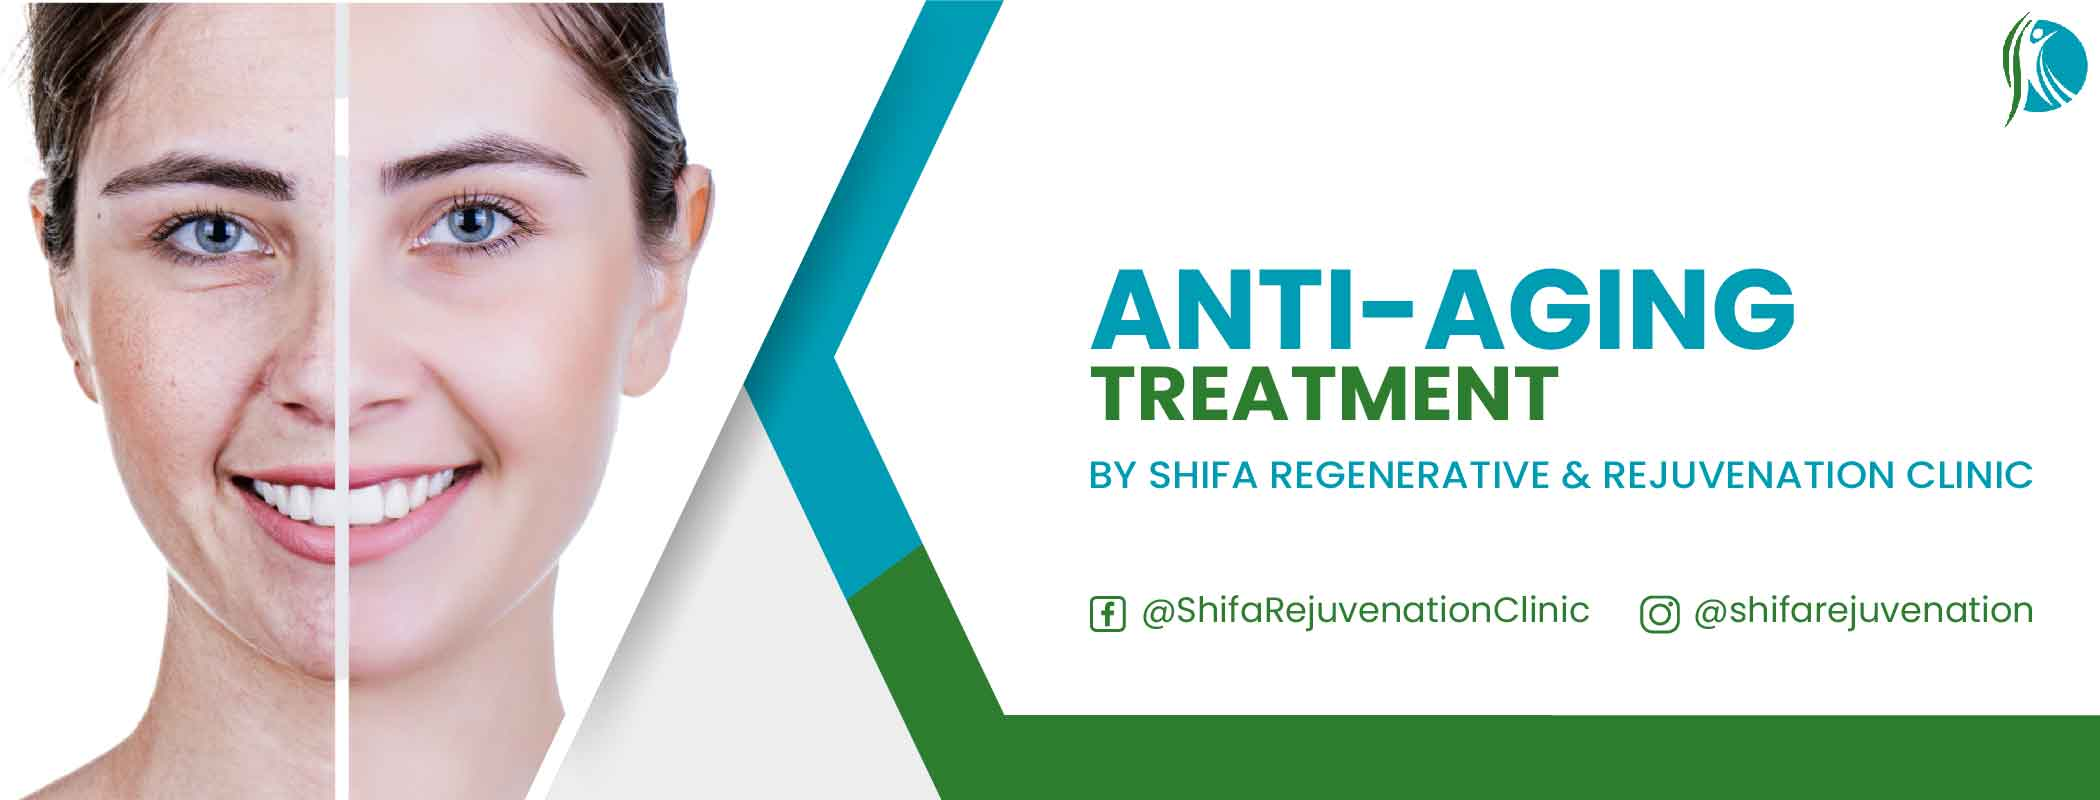 Anti Aging Treatment through Stem Cell Therapy at Shifa